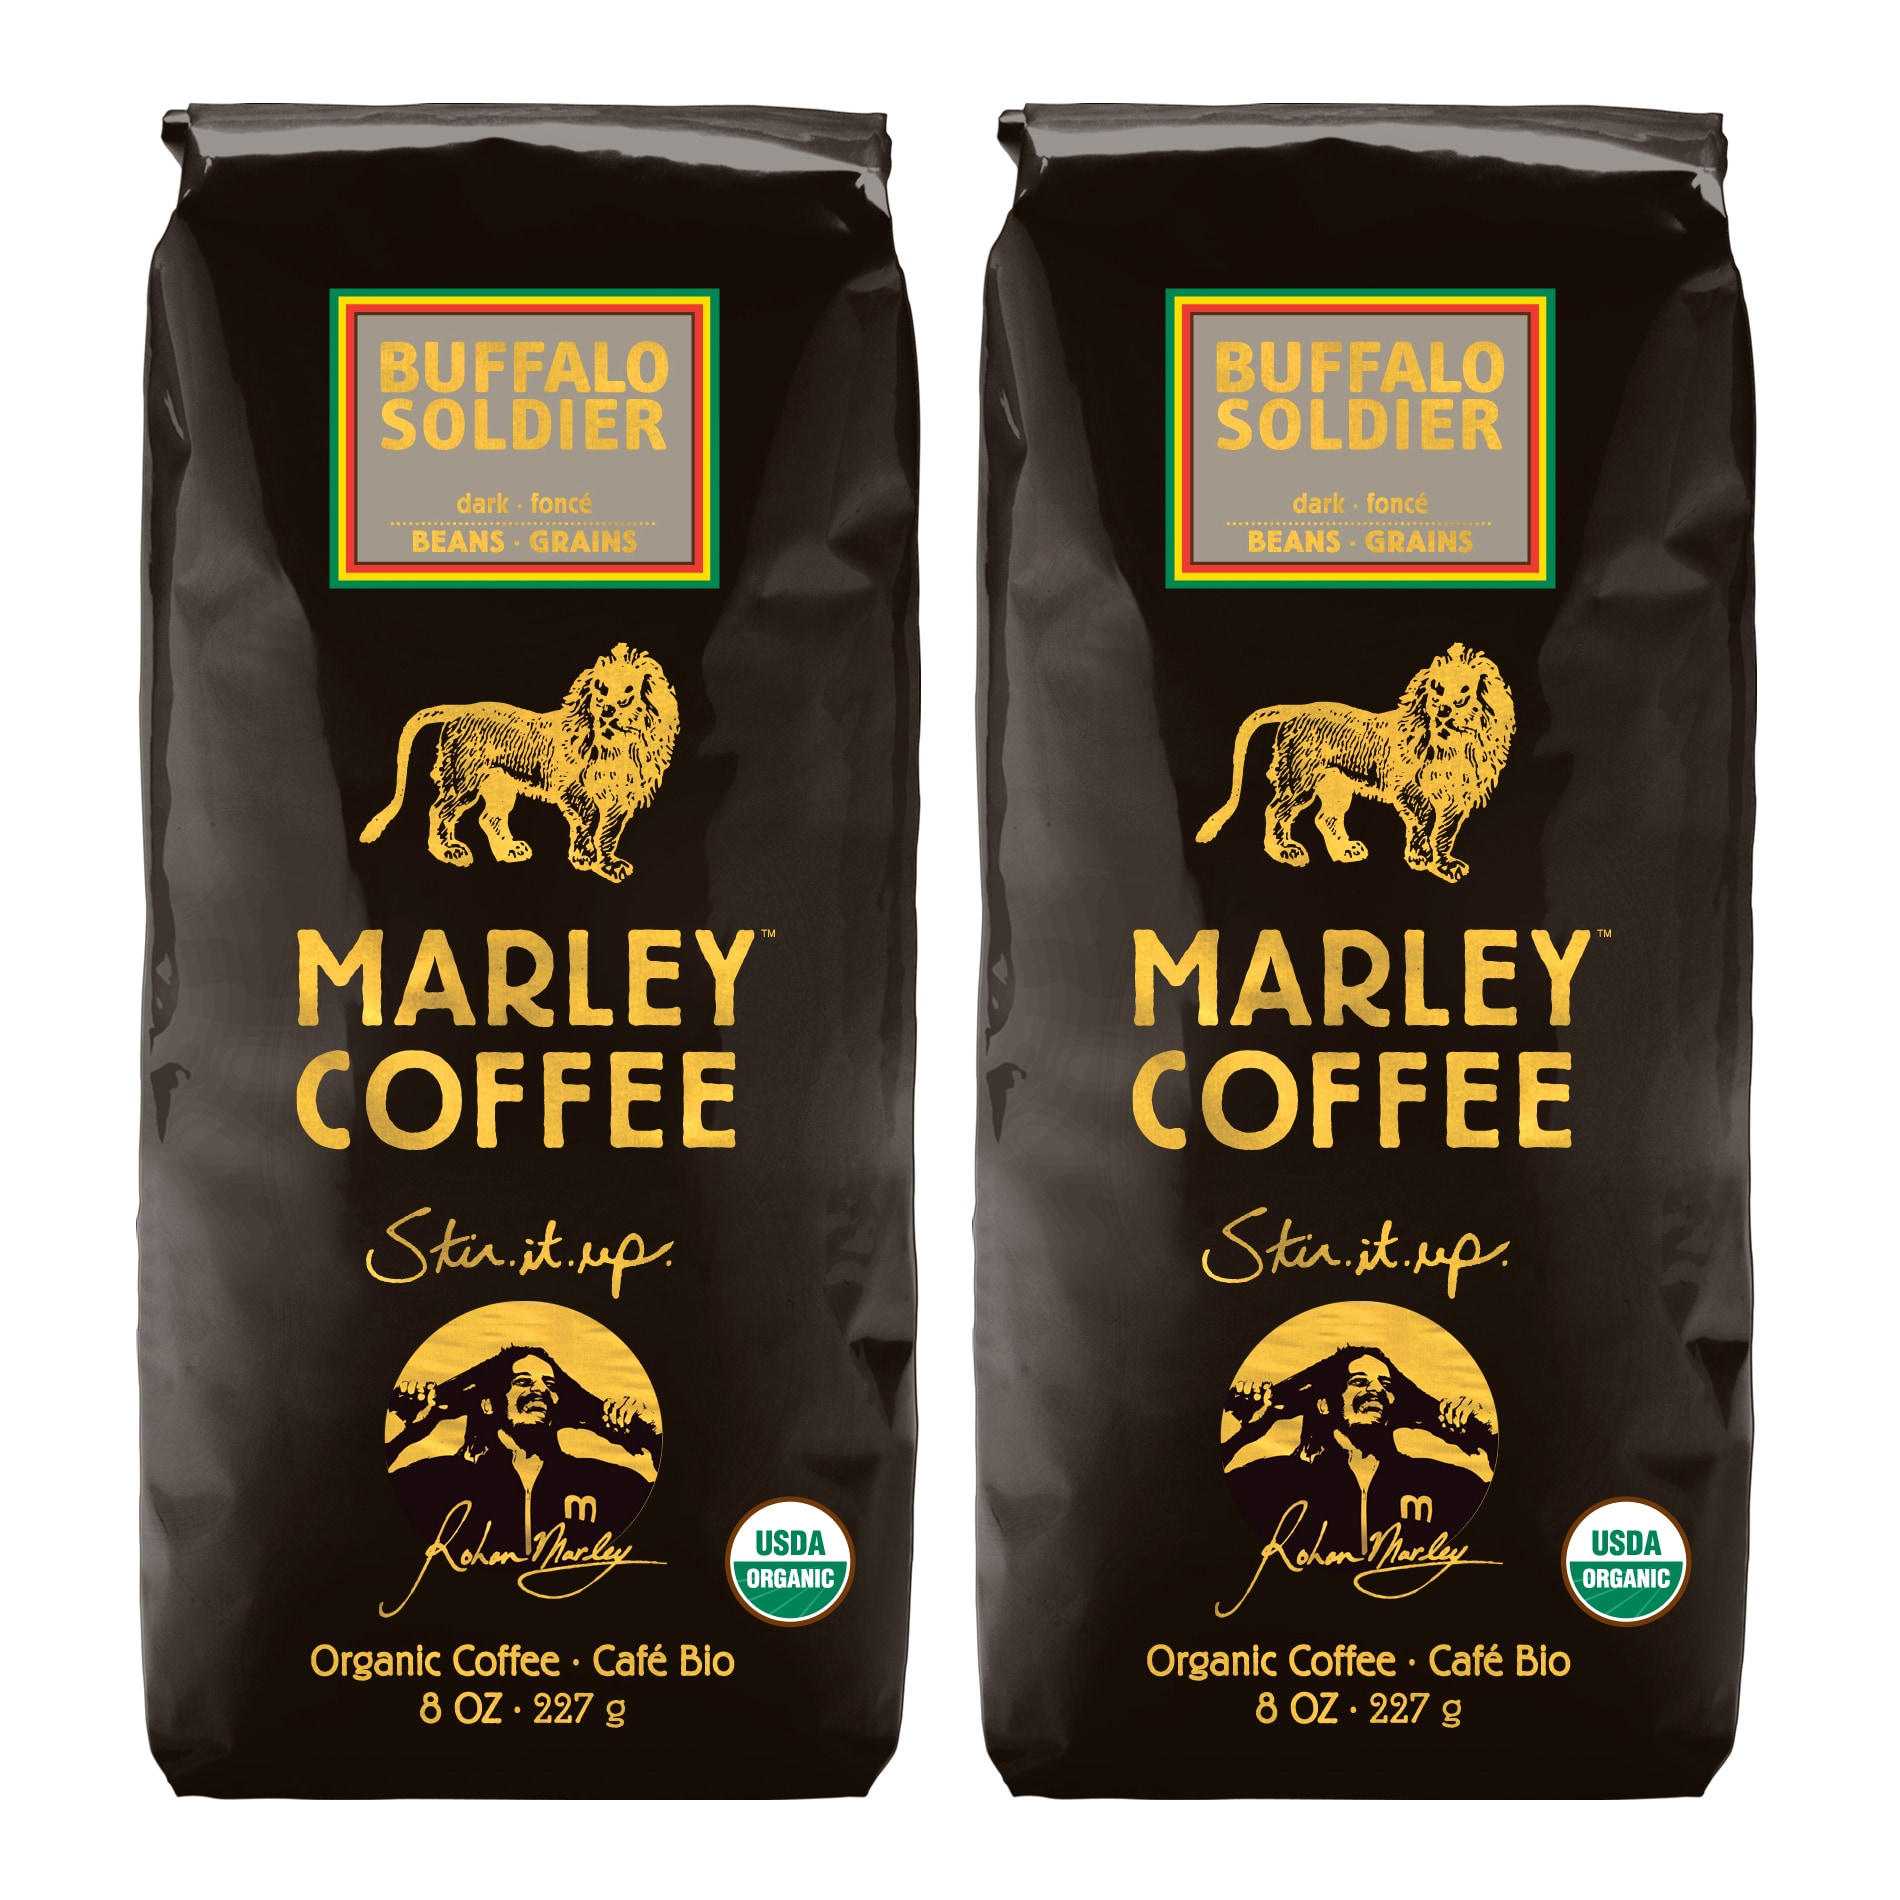 Marley Coffee Buffalo Soldier Whole Bean Coffee (1 Pound) - Thumbnail 0